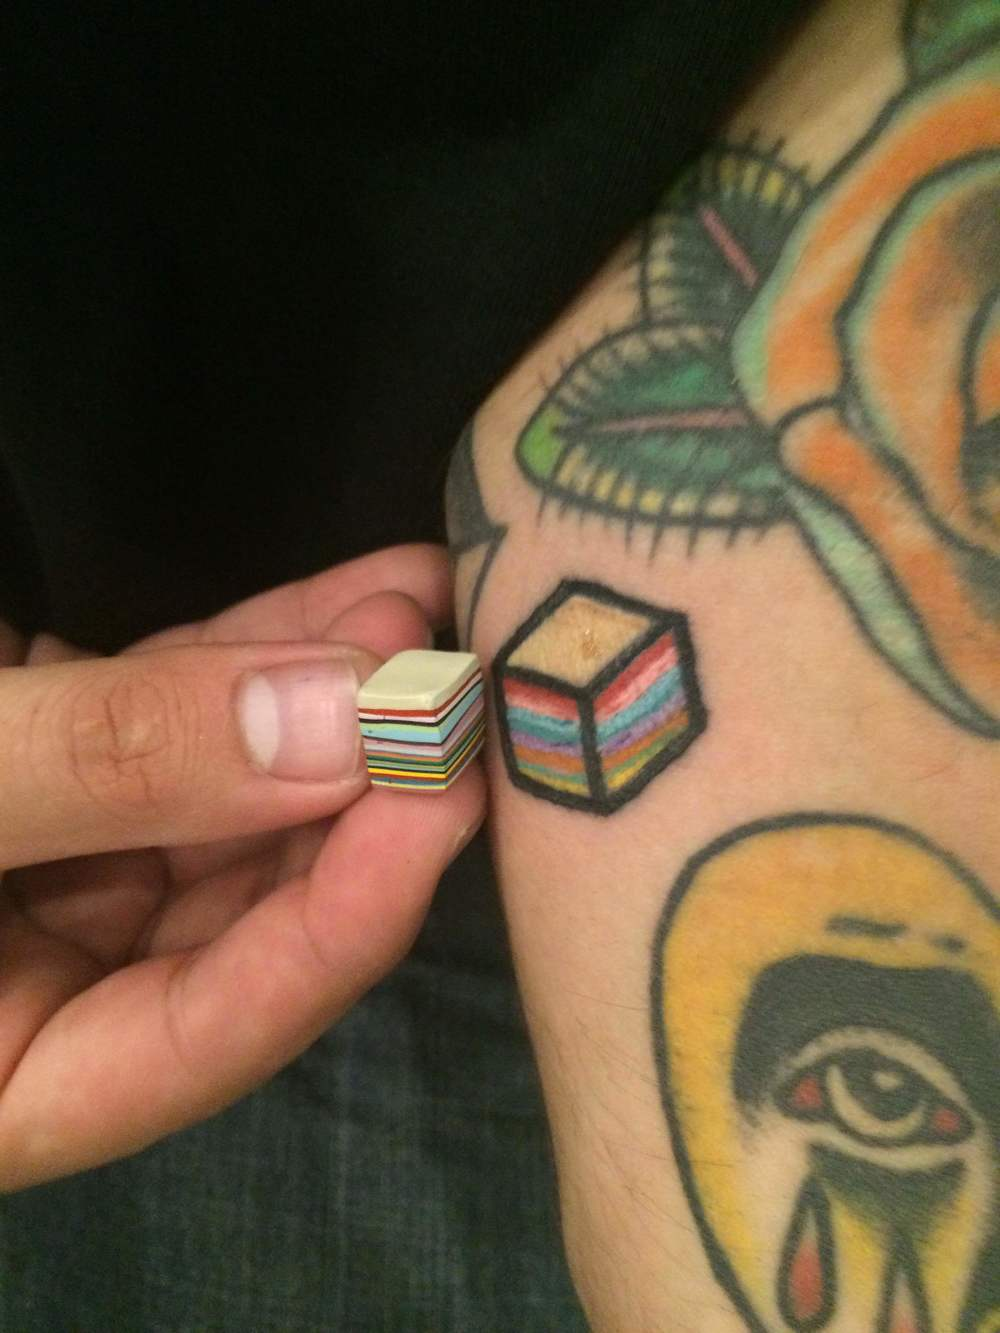 """Look to the cube, for it is singular and still yet it's colors are as vibrant as the life that pulsates around it."" Raff"